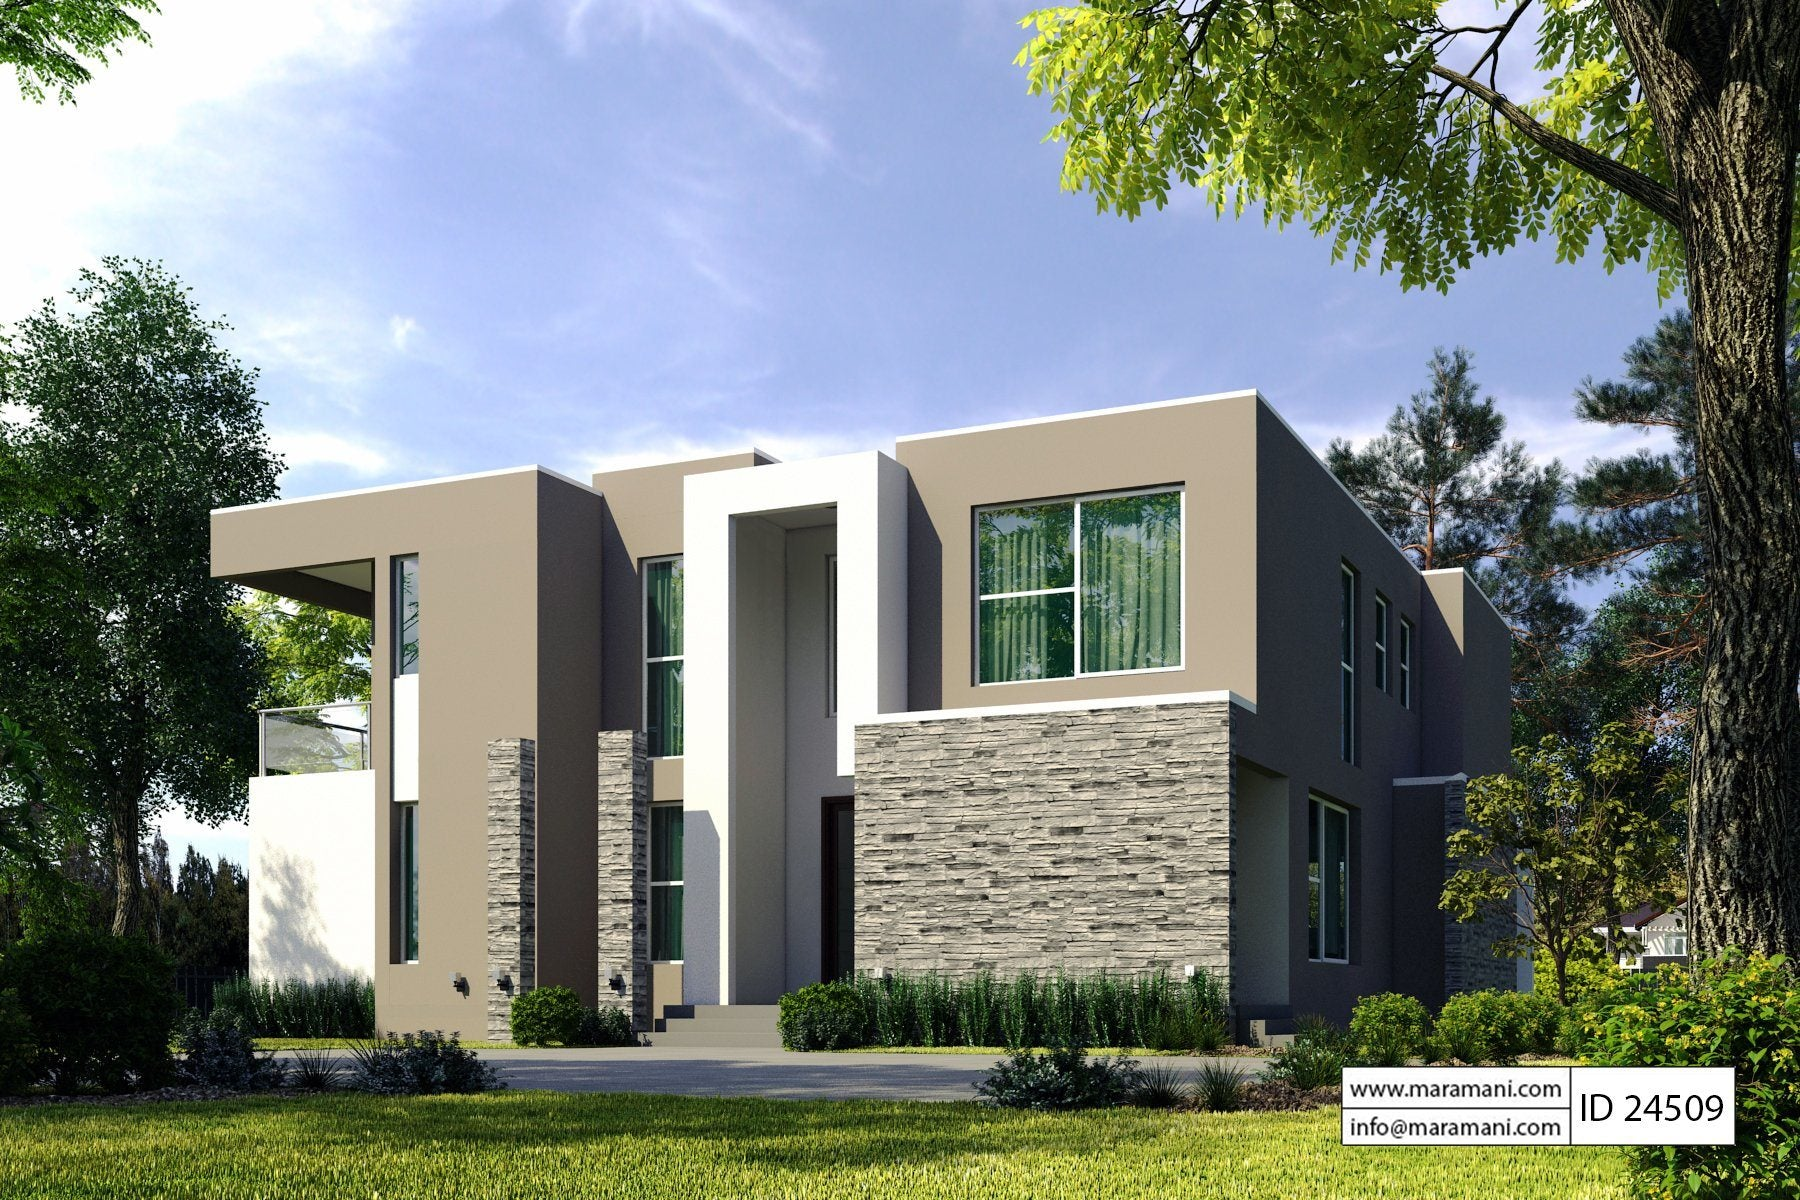 4 bedroom modern house plan id 24509 house plans by for 4 bedroom house to build